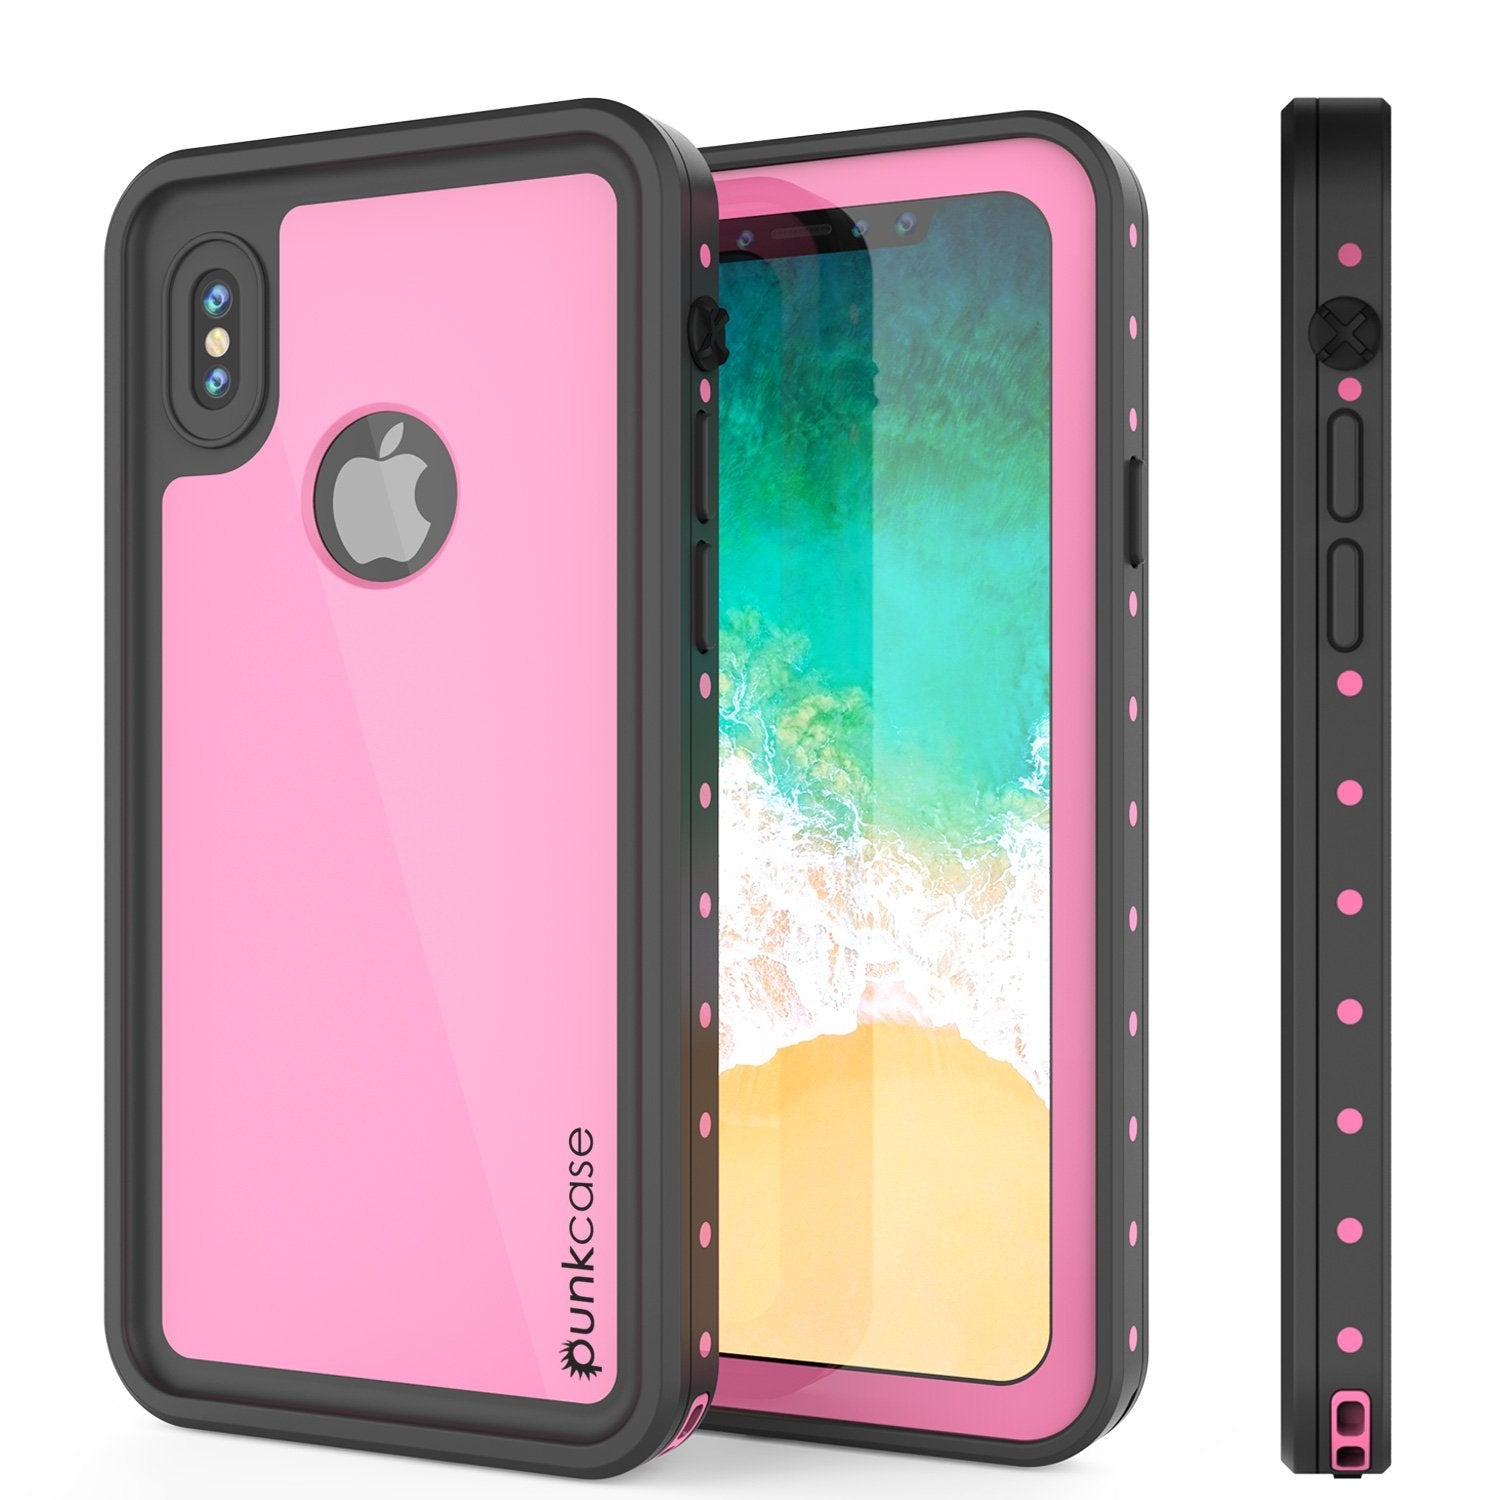 iPhone XS Max Waterproof IP68 Case, Punkcase [Pink] [StudStar Series] [Slim Fit] [Dirtproof]